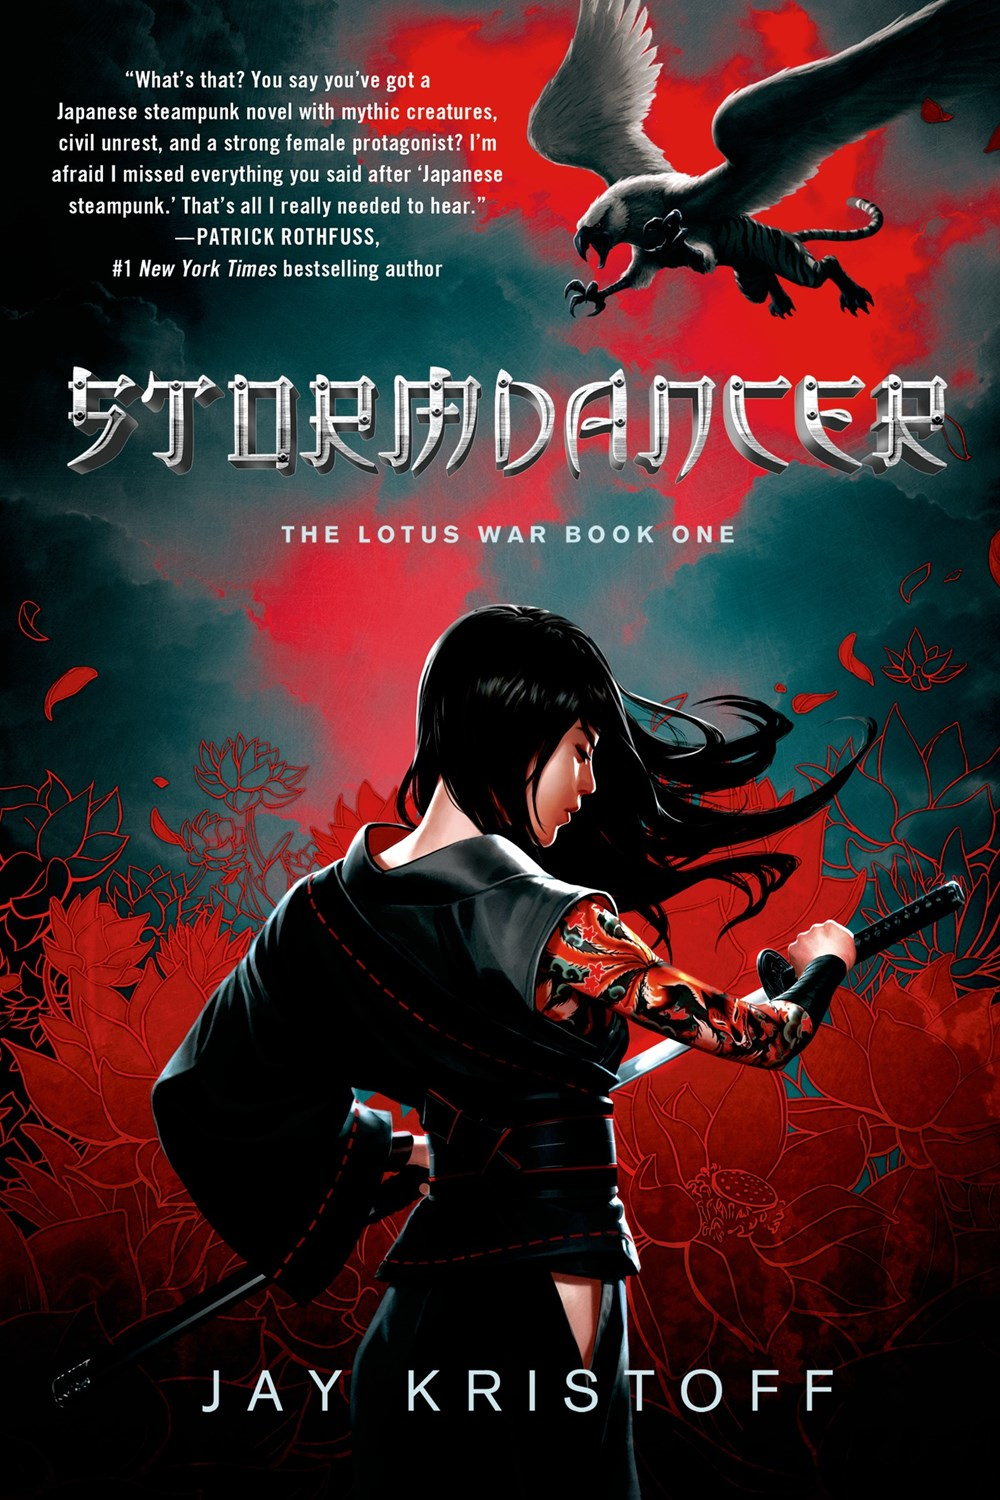 Stormdancer: The Lotus War Book One (Lotus War #01)